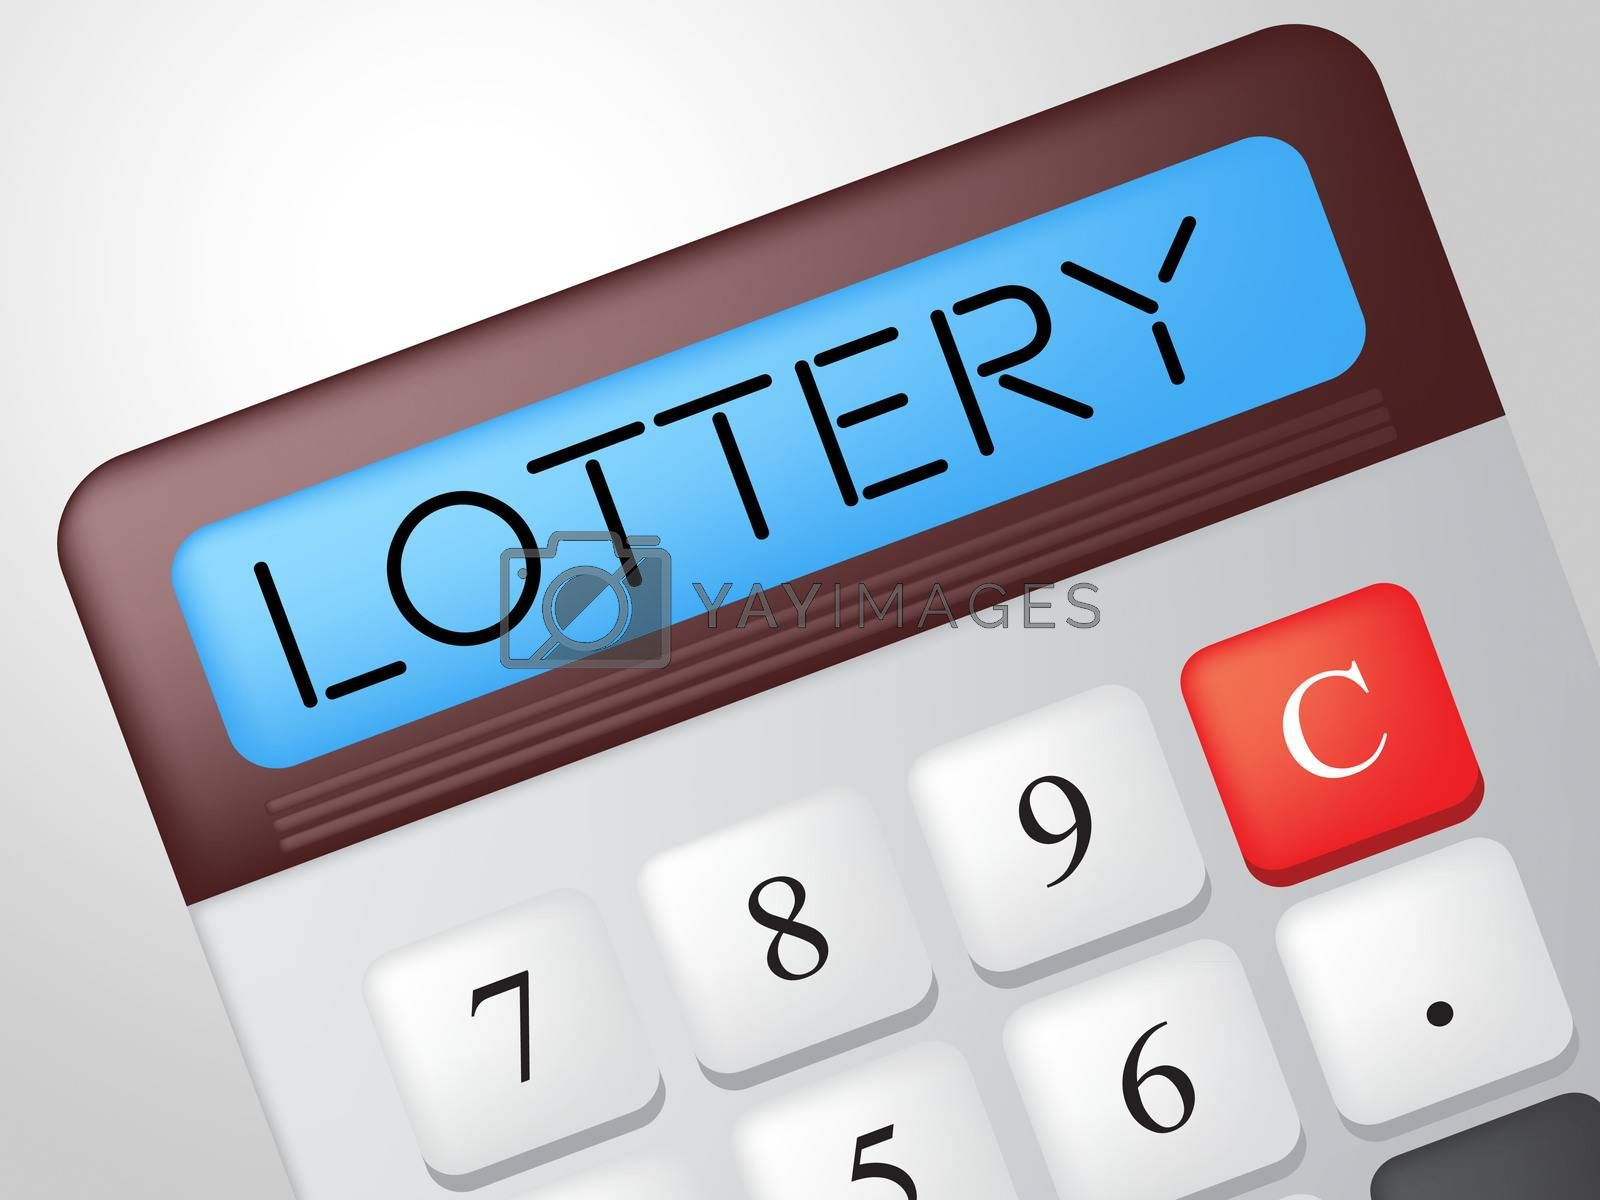 Lottery Calculator Shows Gamble Jackpot And Fortune by stuartmiles